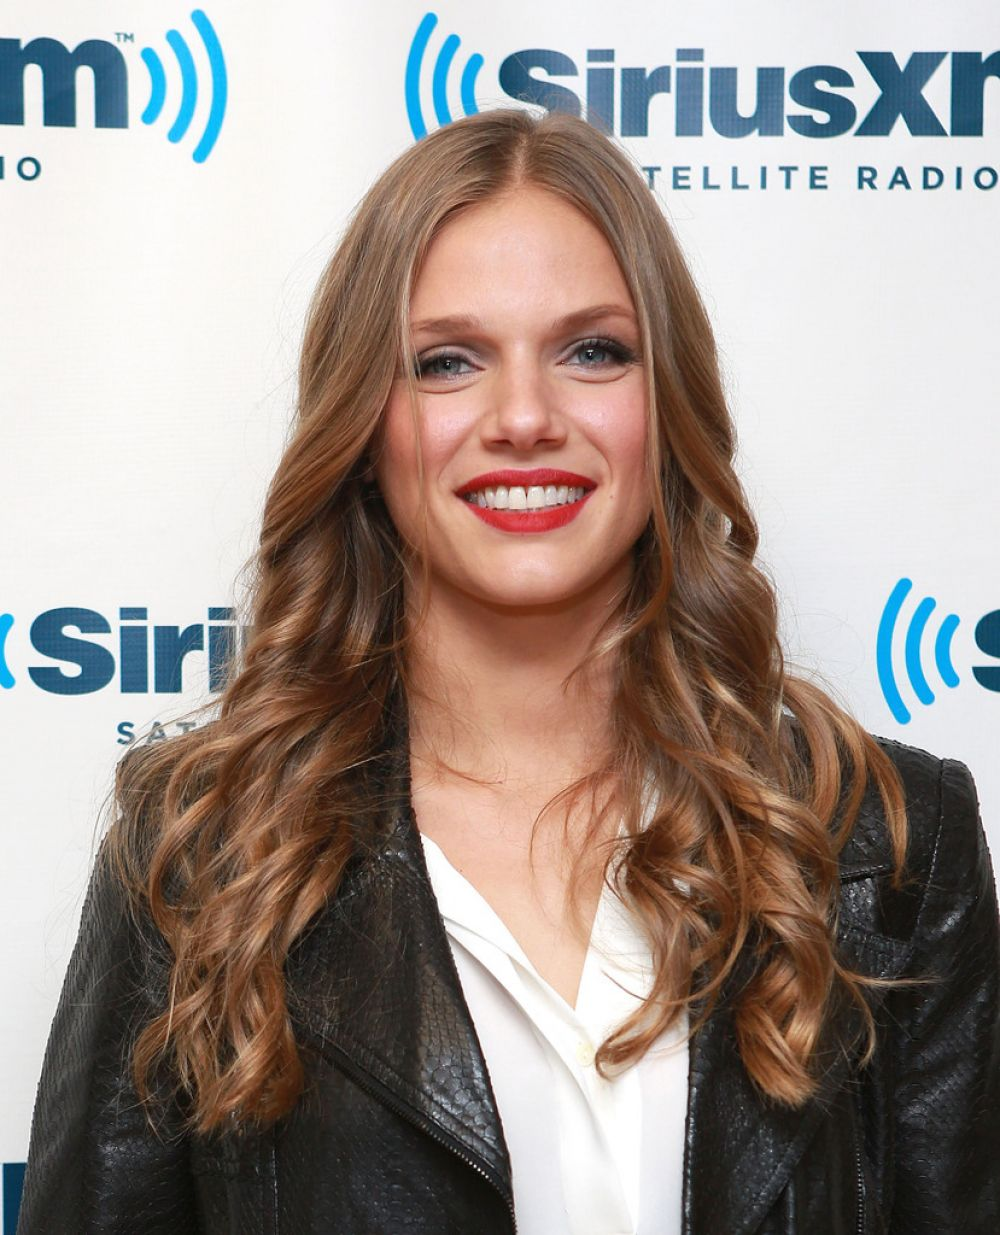 tracy spiridakos speaks greektracy spiridakos wiki, tracy spiridakos instagram, tracy spiridakos film, tracy spiridakos facebook, tracy spiridakos, tracy spiridakos age, tracy spiridakos bates motel, tracy spiridakos boyfriend, tracy spiridakos twitter, tracy spiridakos biography, tracy spiridakos tumblr, tracy spiridakos supernatural, tracy spiridakos gq, tracy spiridakos speaks greek, tracy spiridakos net worth